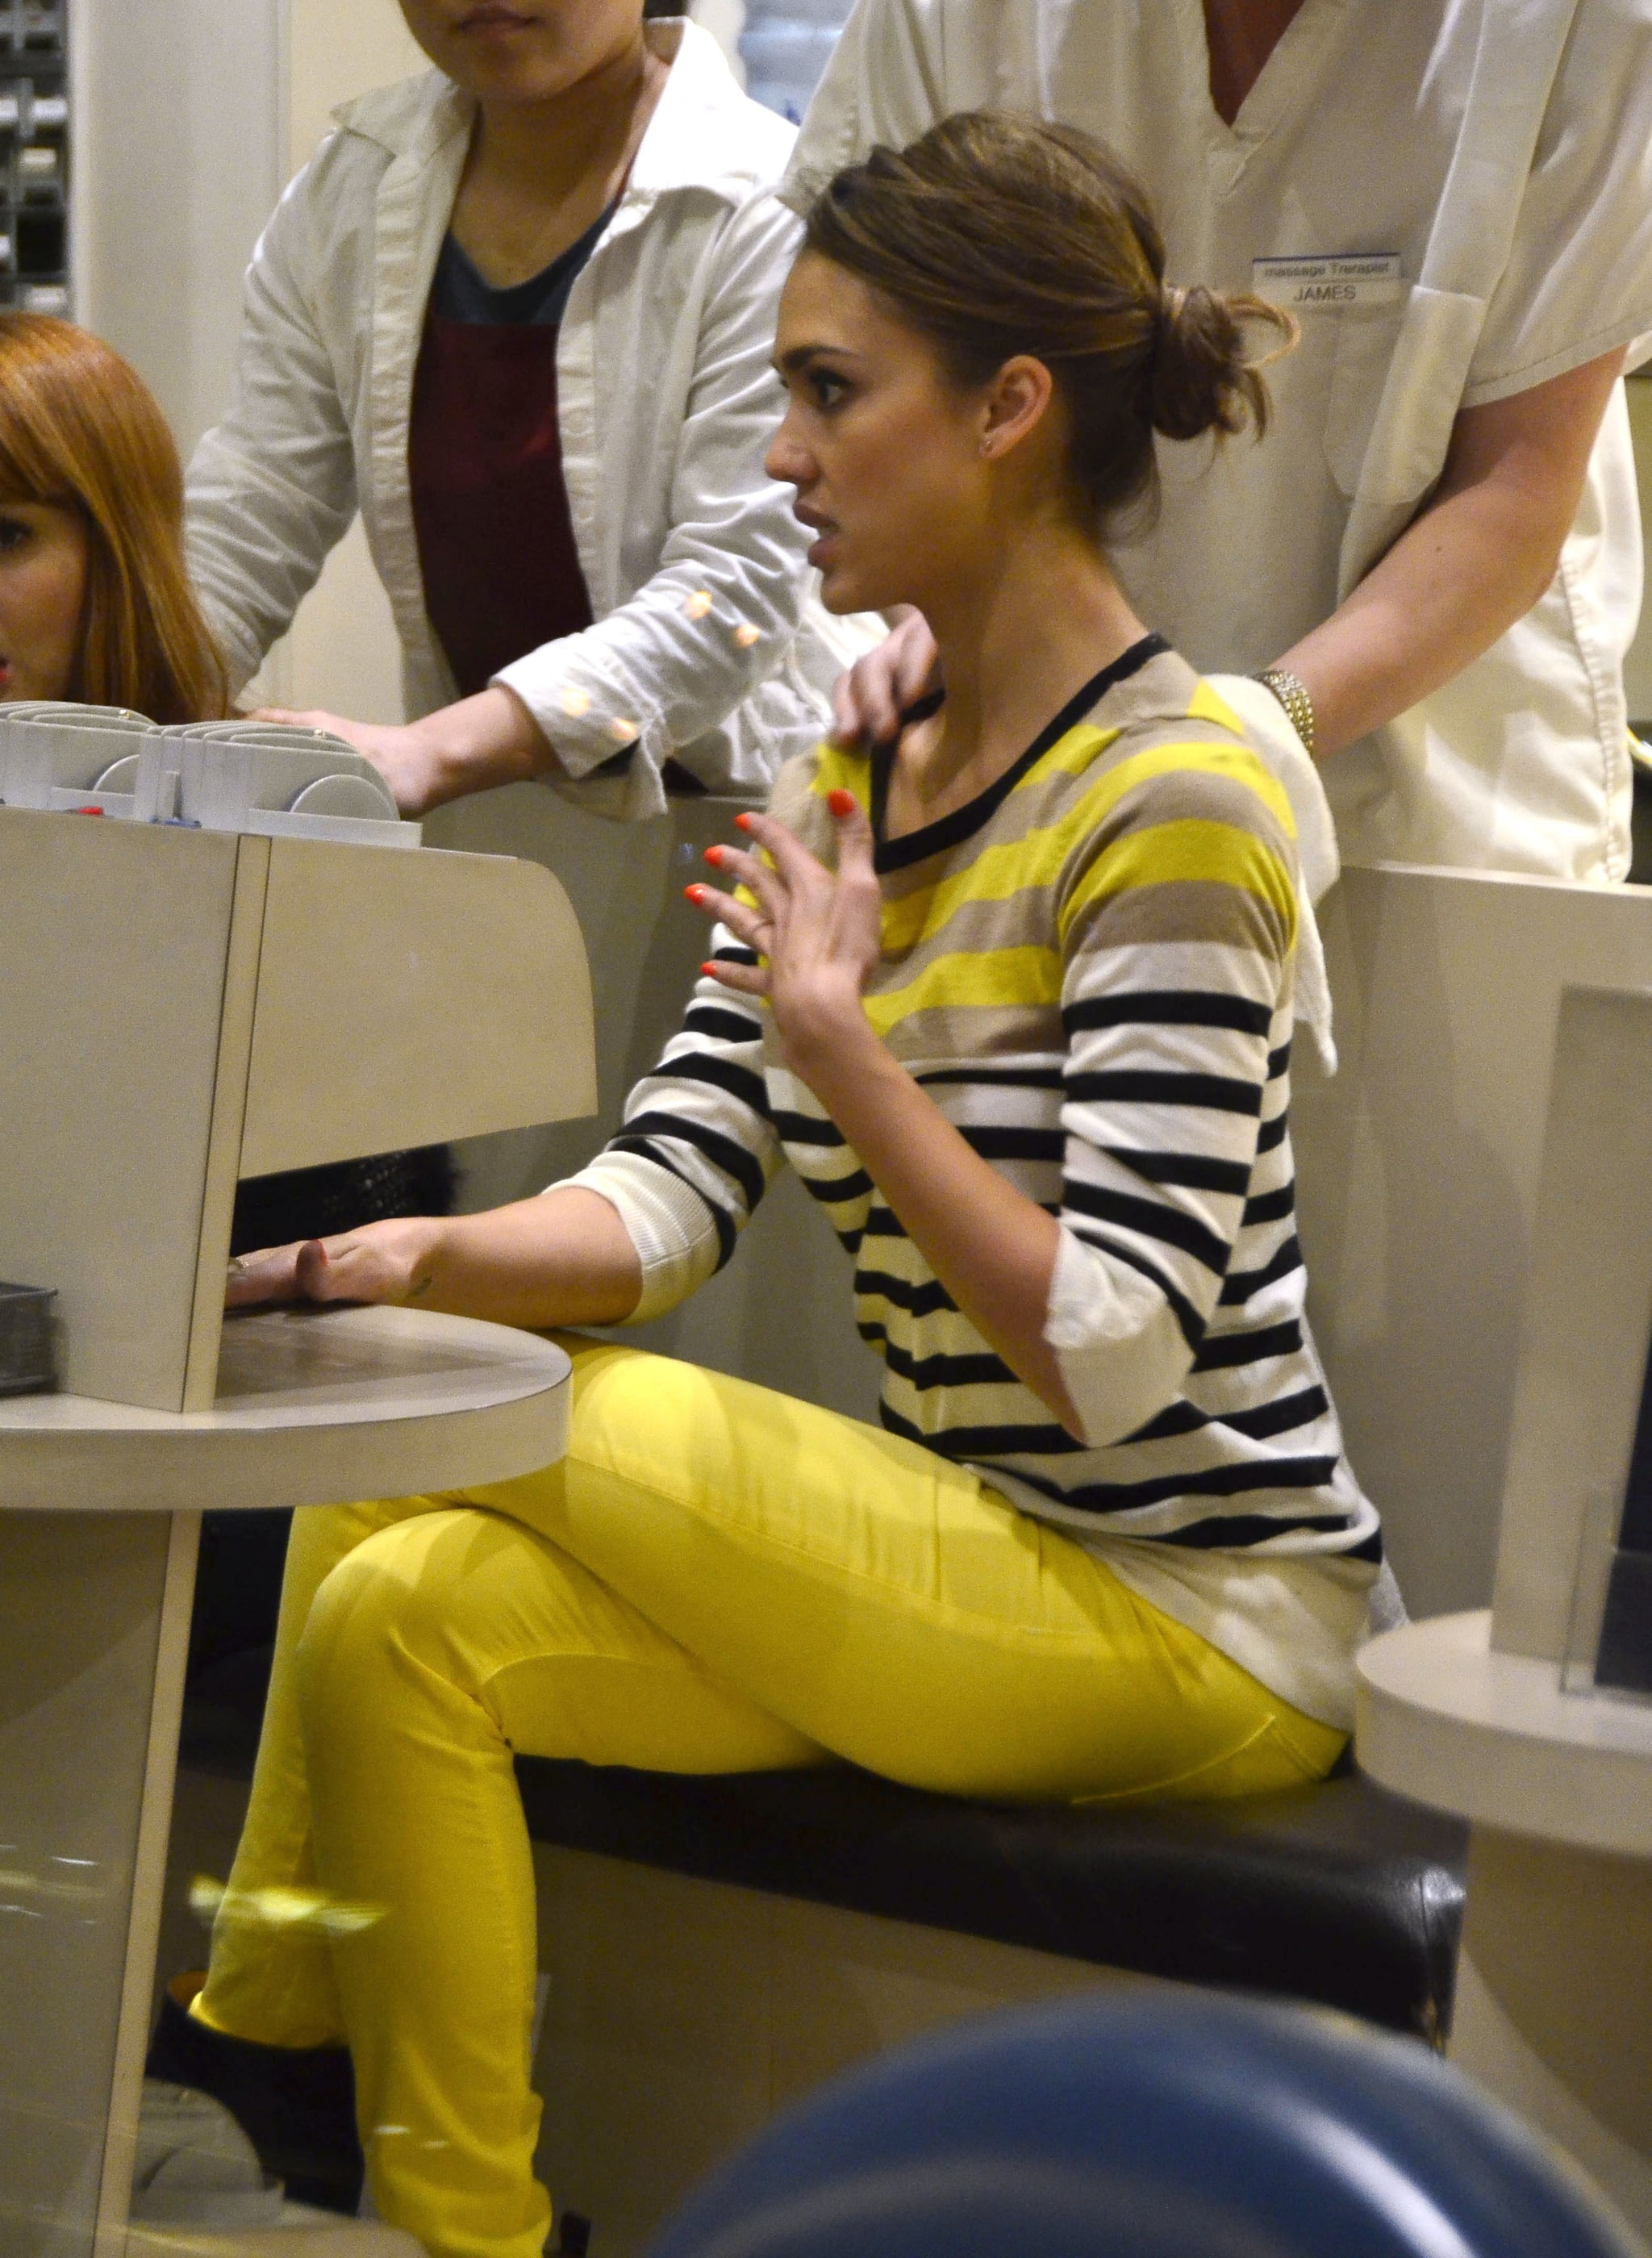 Jessica went bright for a mani-pedi session in NYC, working a striped Ann Taylor sweater, Hudson yellow skinny jeans, and punchy nail polish.